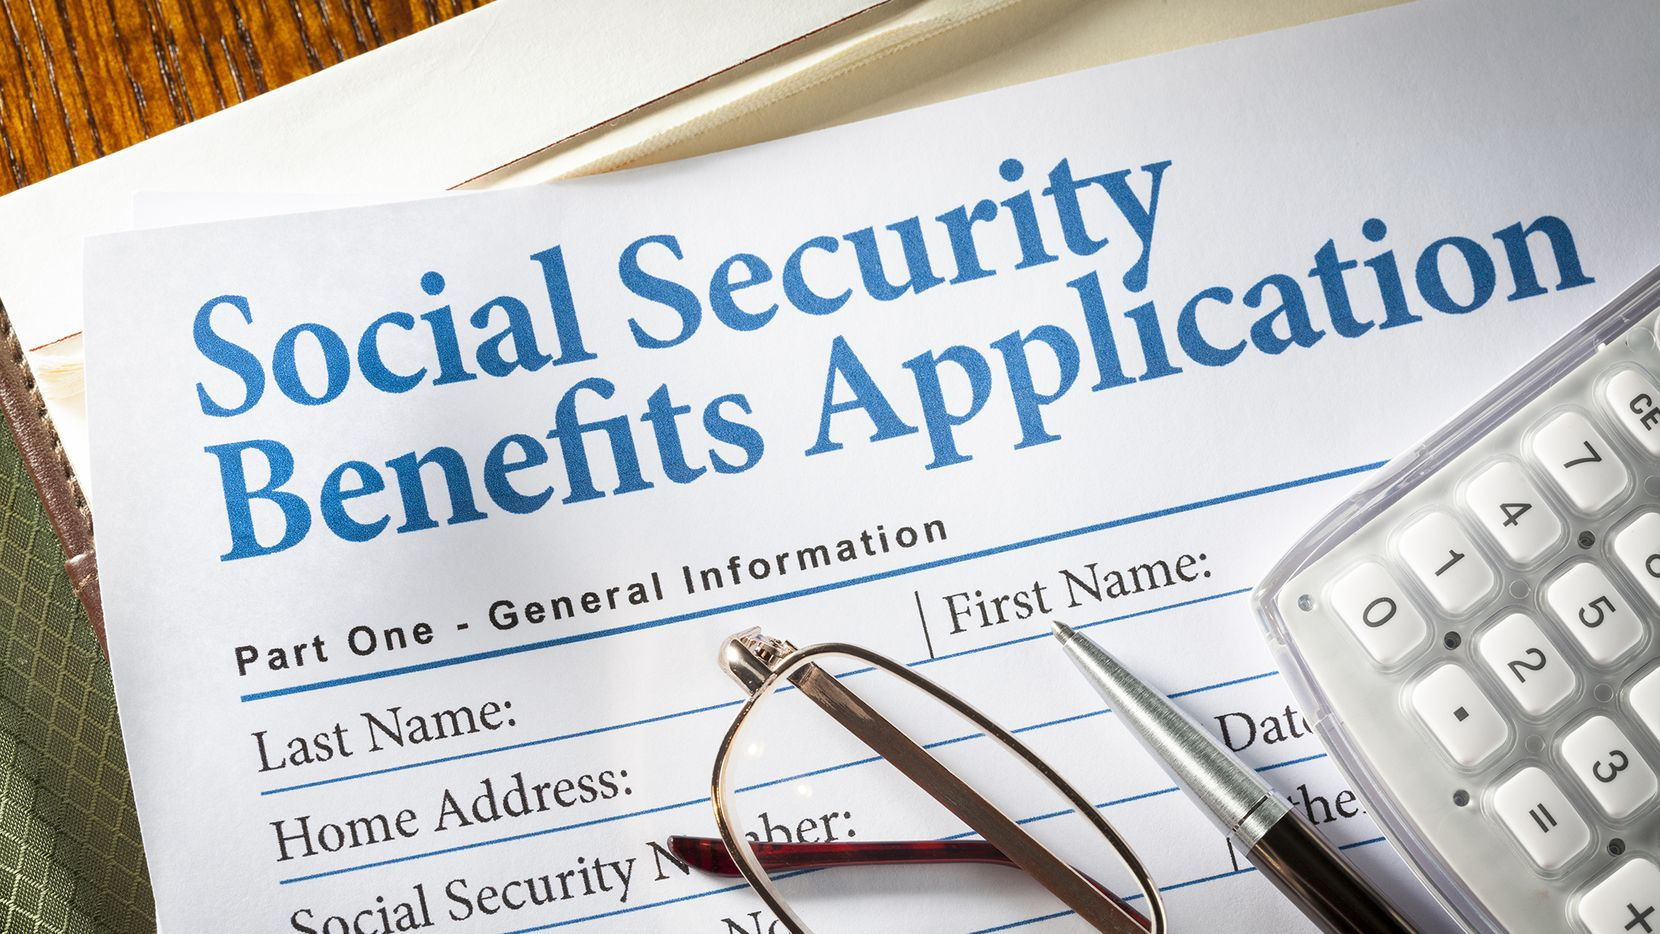 The application question is asking which month you want to be your first month of eligibility for Social Security benefits.